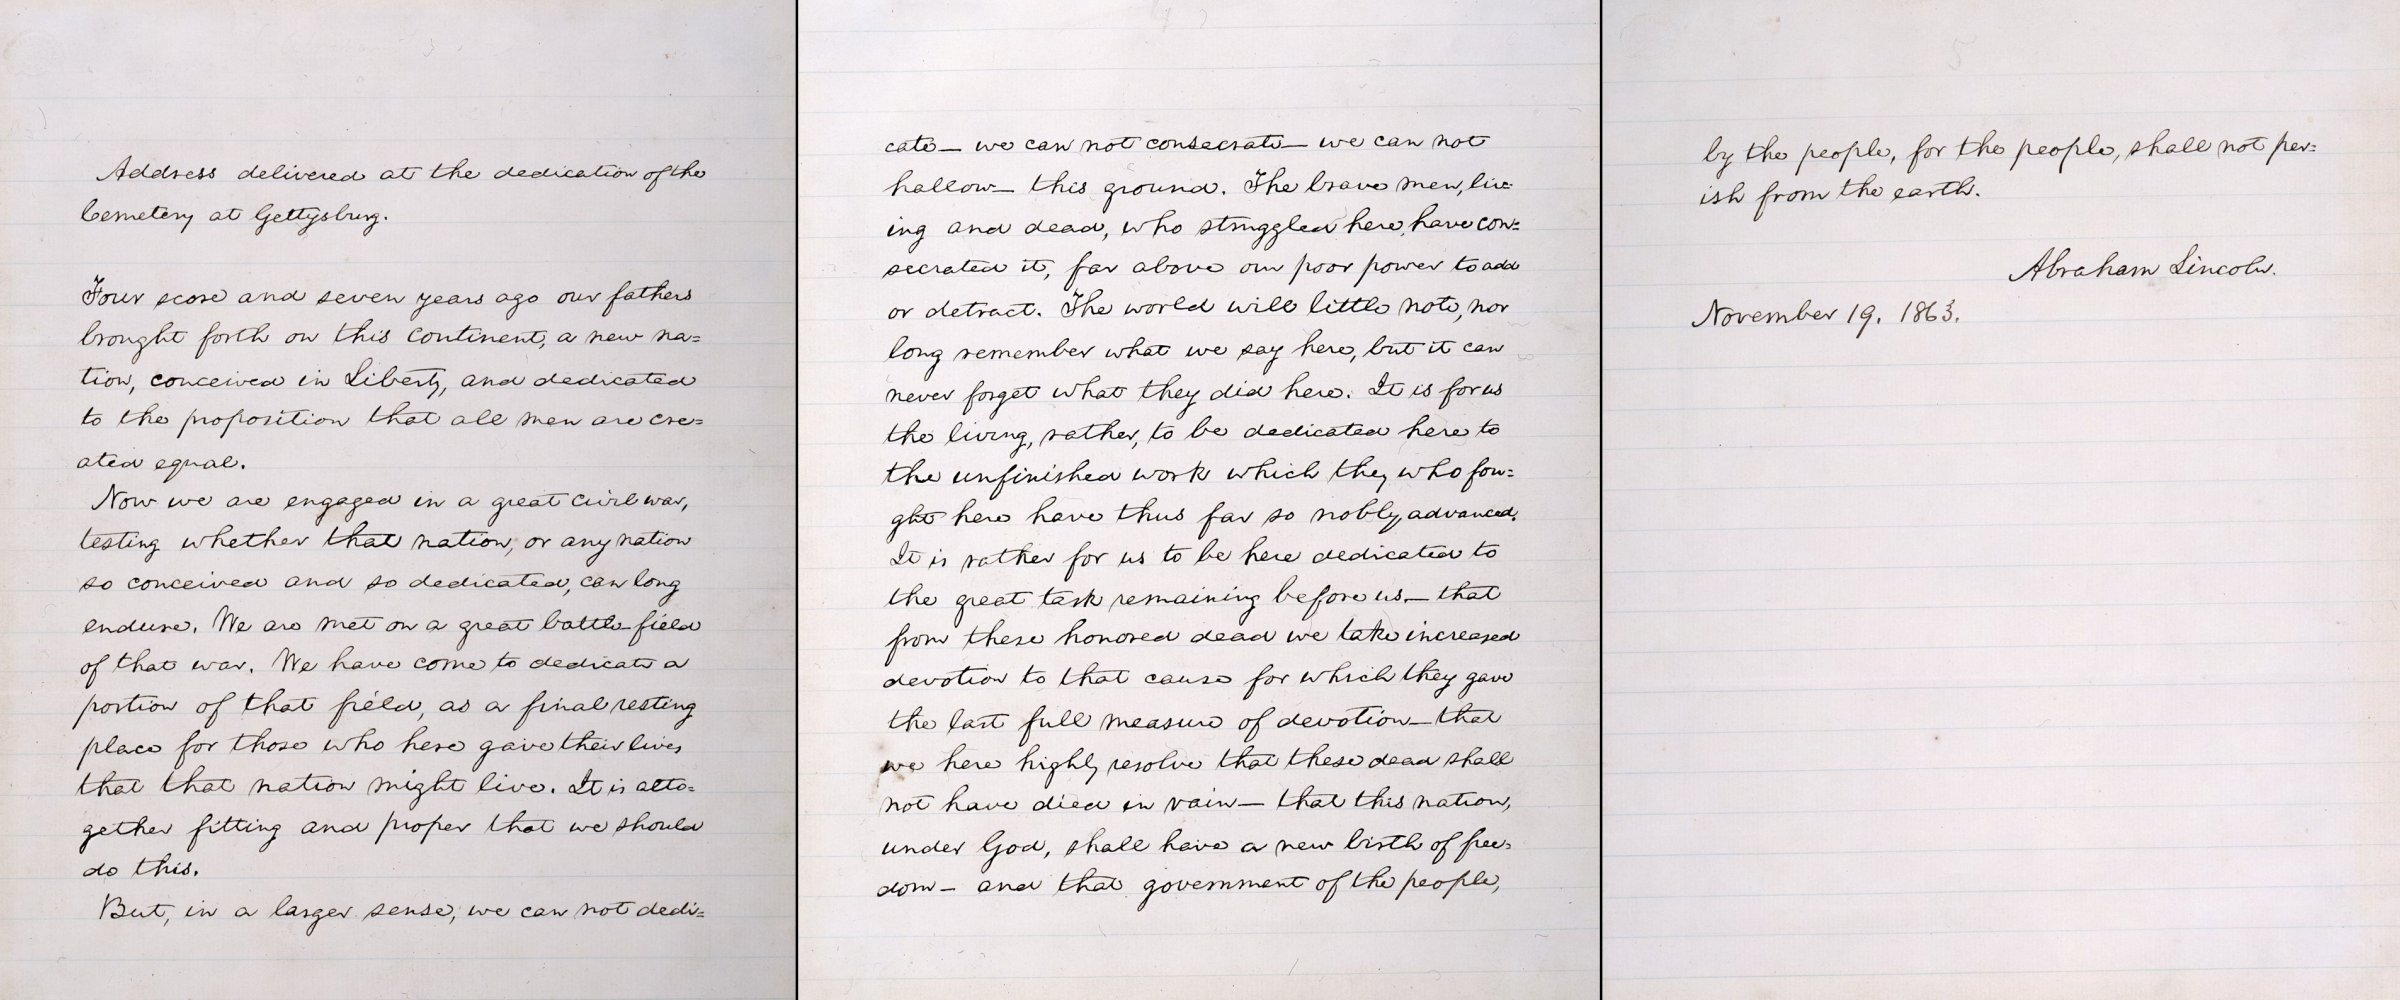 """the literary elements of abraham lincolns gettysburg address Lincoln's gettysburg address: """"a few appropriate remarks""""  it was given by  president abraham lincoln not far from frederick, md, in gettysburg, pa, at the  dedication of a soldier's  credible historians have pieced together the actual  story  2015 february features on effective communication."""